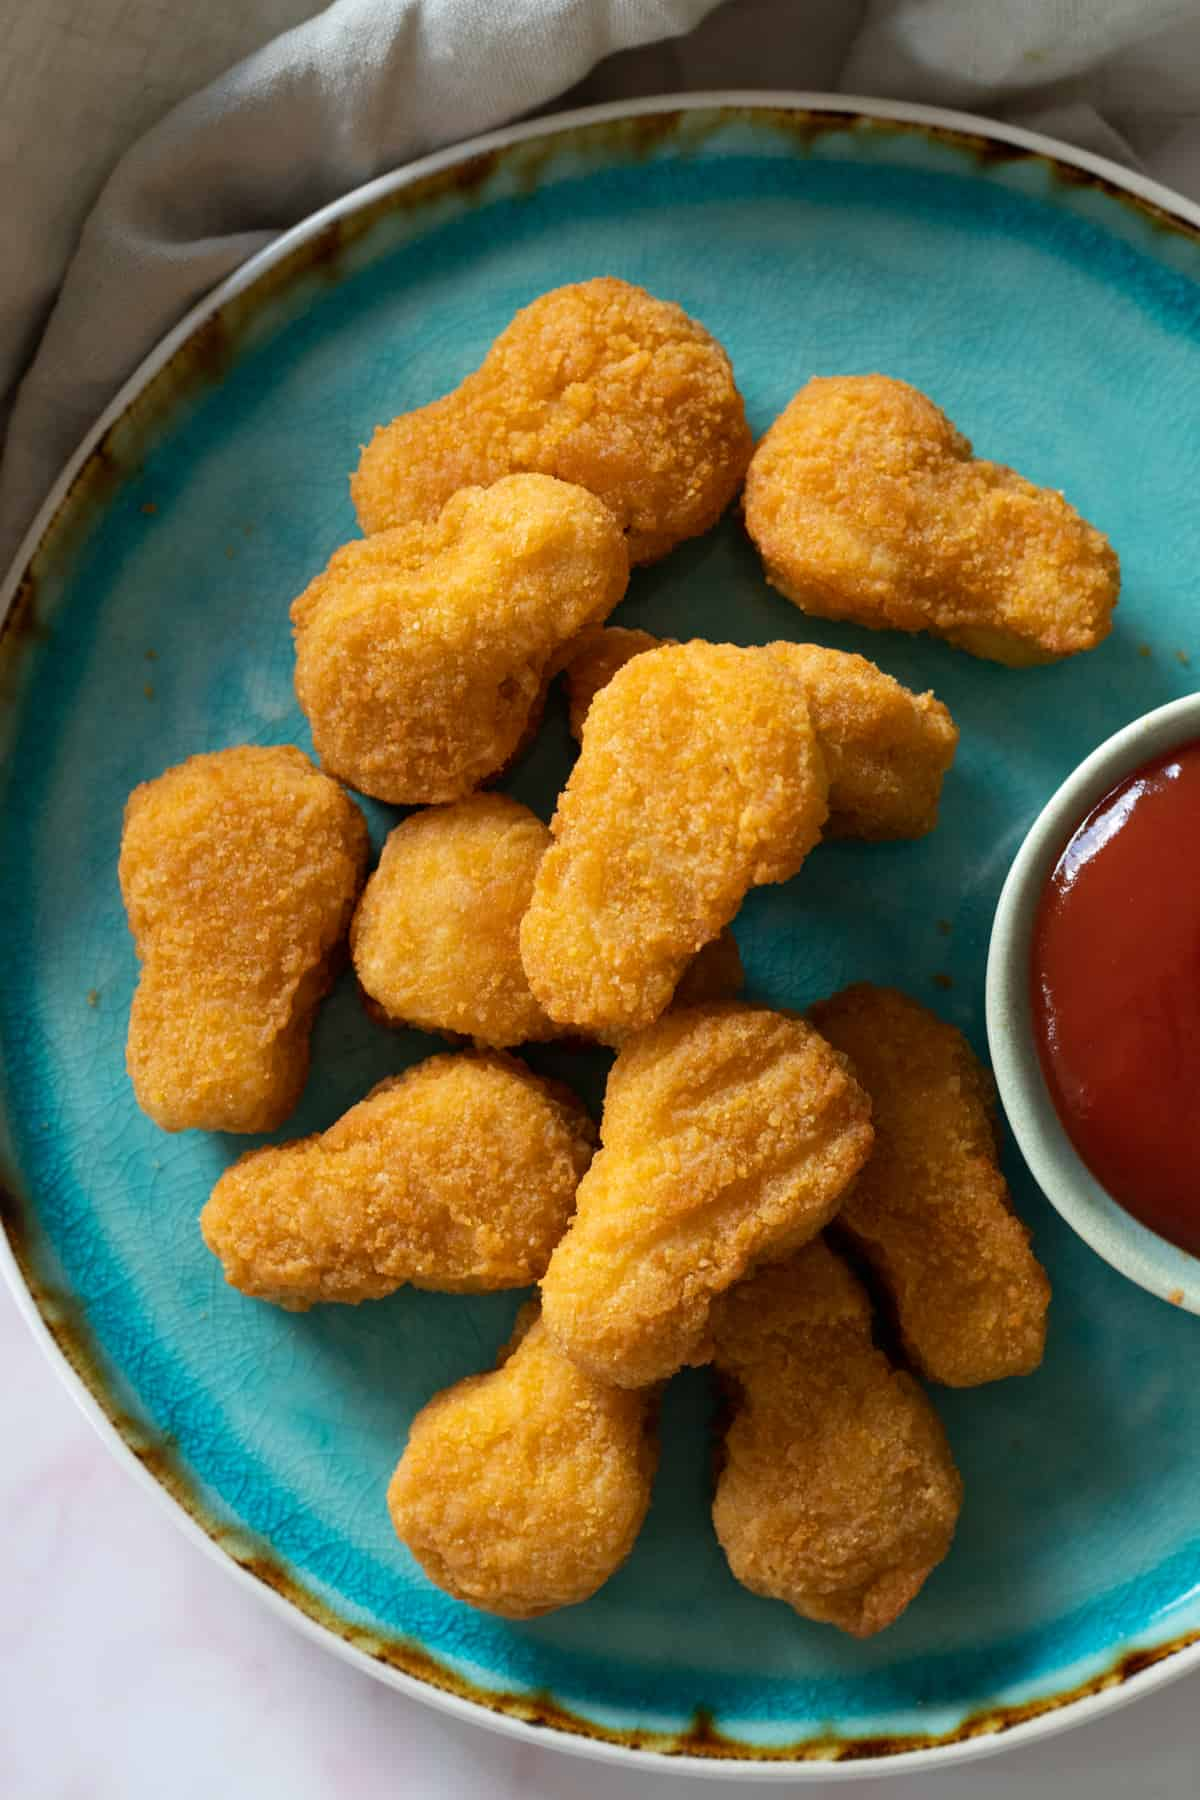 chicken nuggets on a plate with a bowl of ketchup